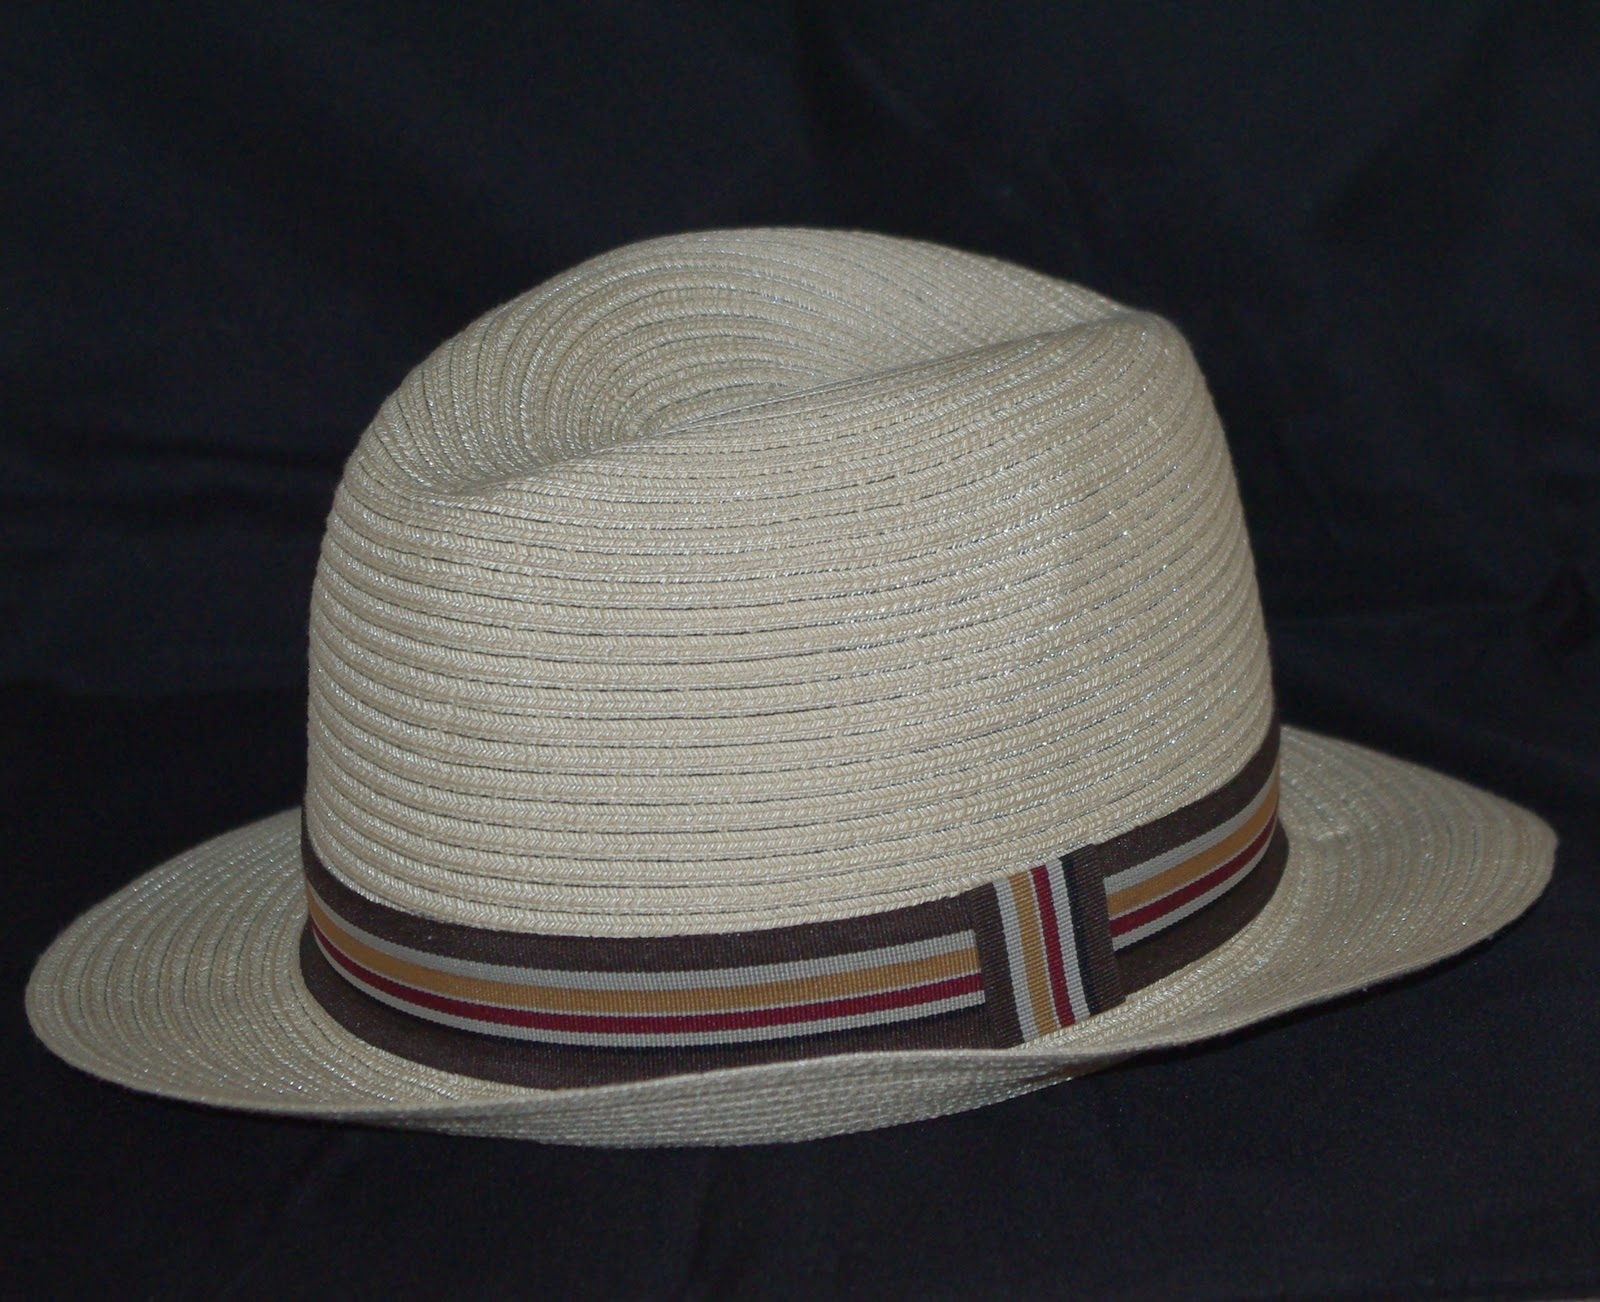 f619a008c5b02 New in today and just added to the Headstart hats website. Two summer trilby  hats for Men and Women. We ve added these two new stylish sun hats under  the ...